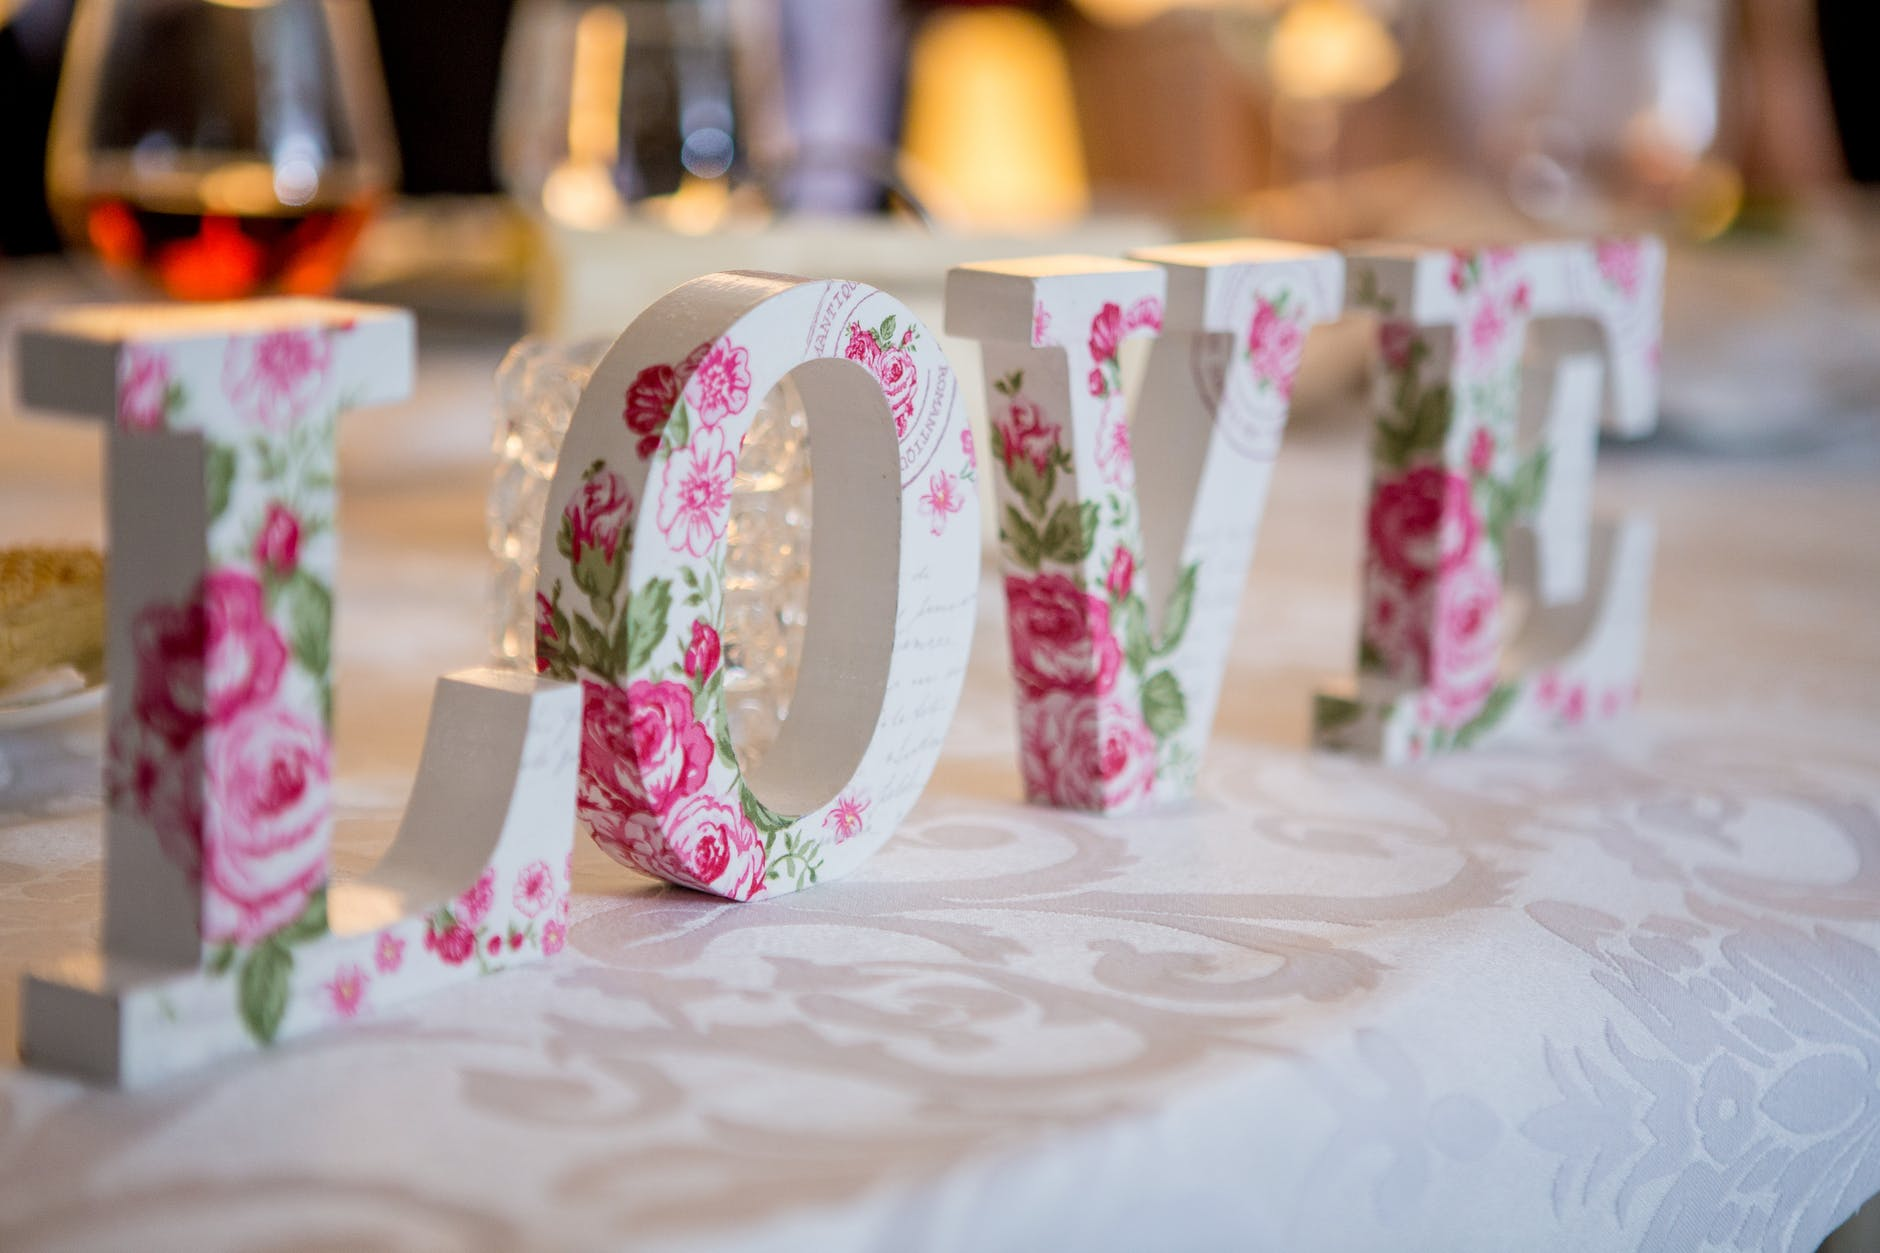 white and pink floral freestanding letter decor Photo by rovenimages.com